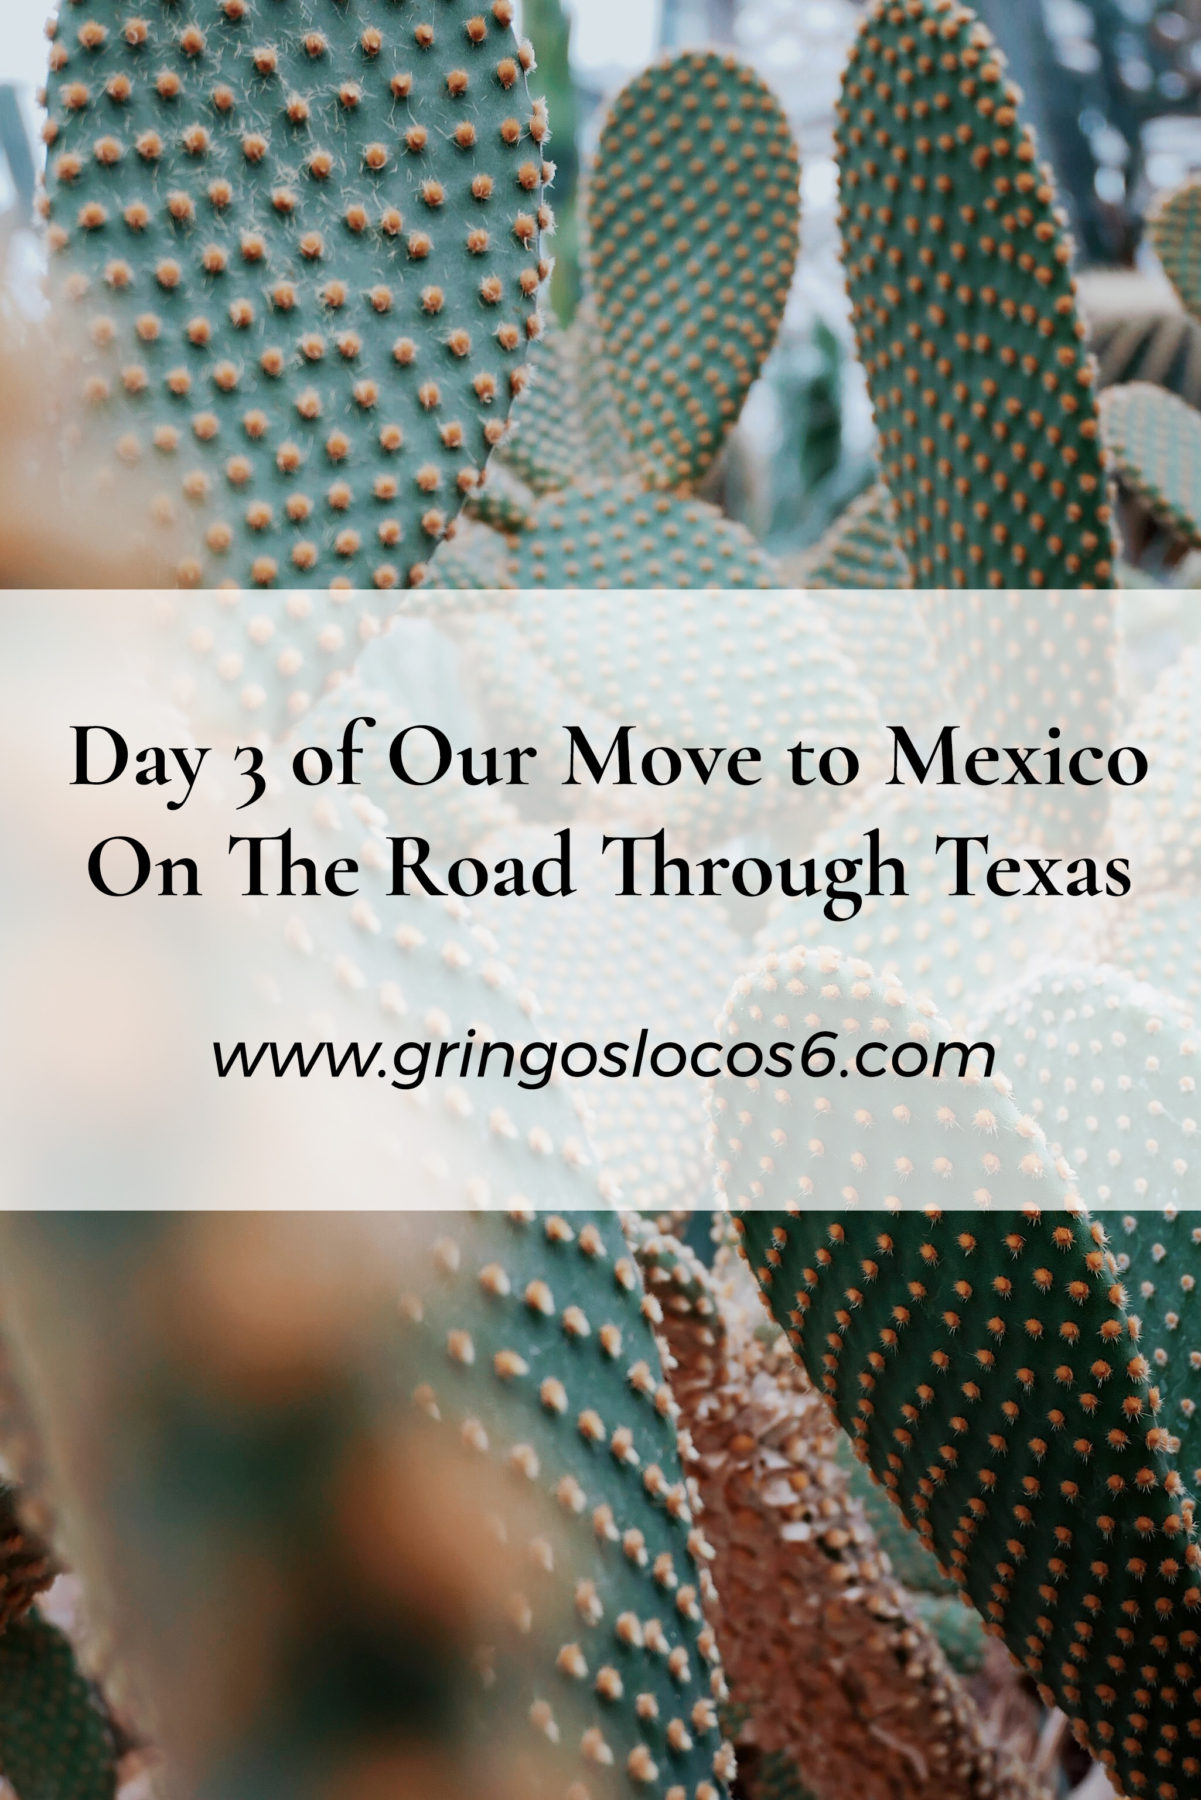 We are on the road through Texas in our 2000 mile move to Mexico. Stick around and share the adventure with us. This is just the beginning!